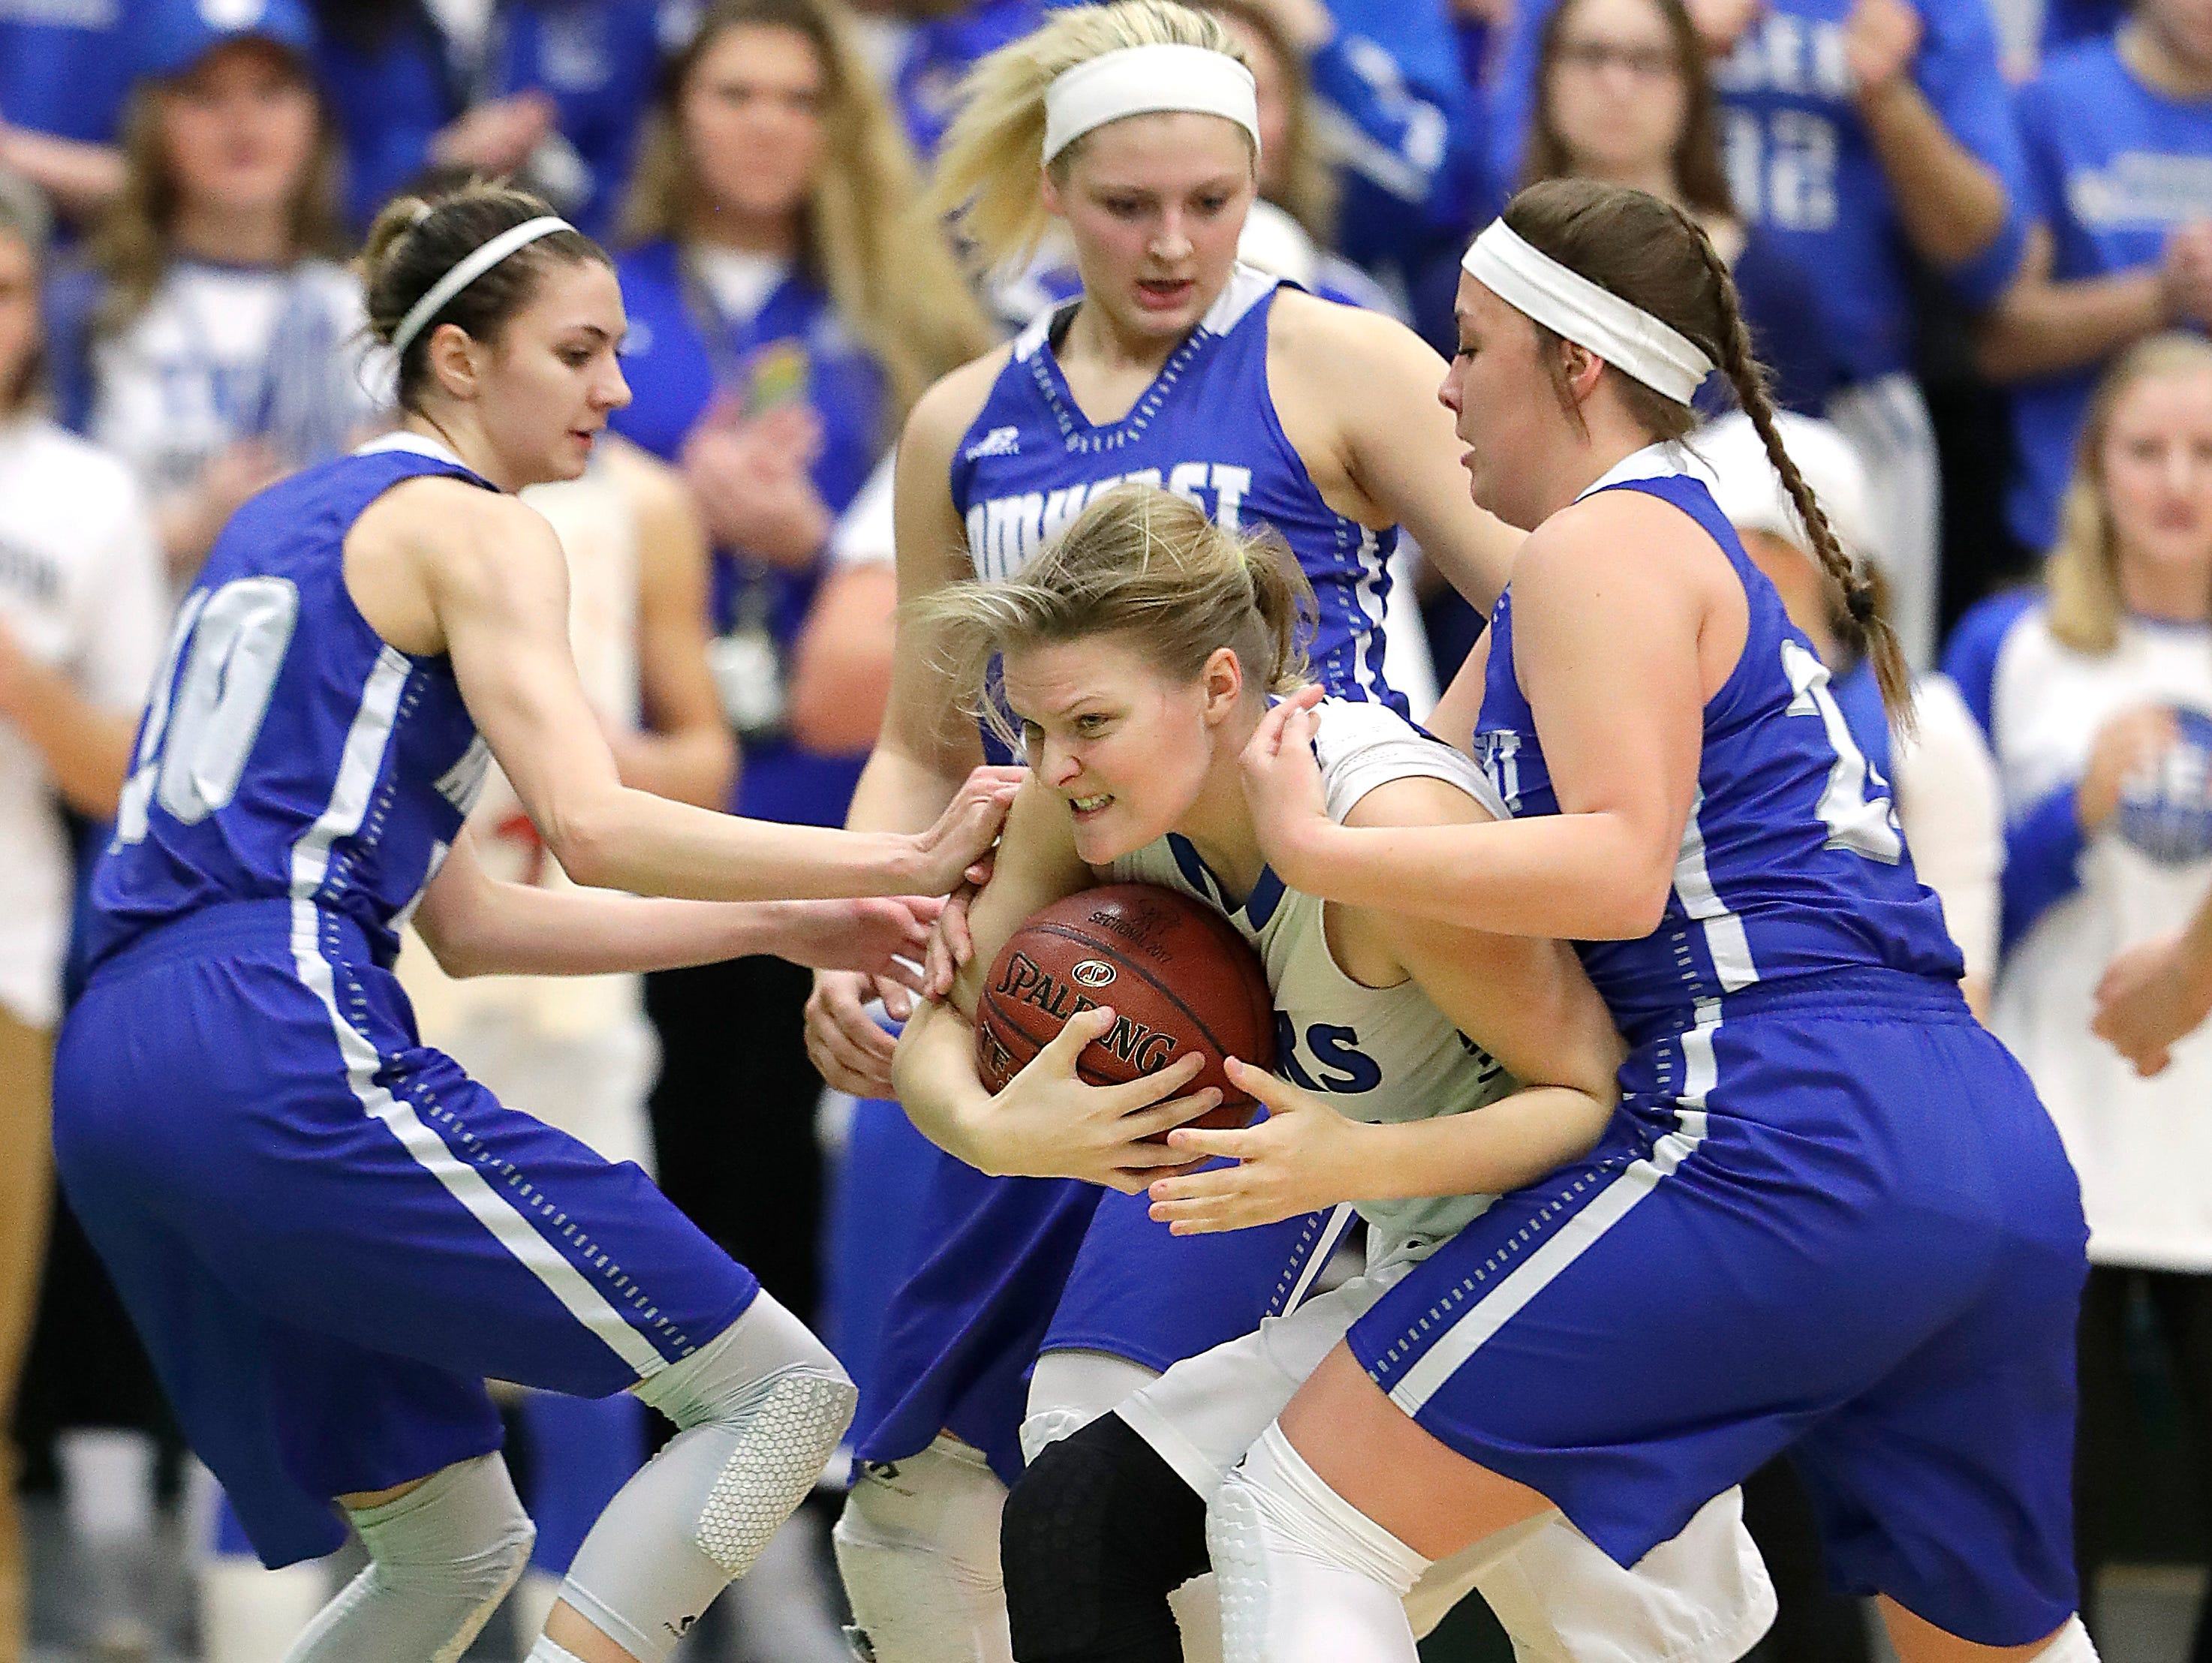 Wrightstown senior Ashley Glodowski fights for possession against Amherst defenders in a WIAA Division 3 sectional final girls basketball game at Green Bay Preble on Saturday. Glodowski is one of three six seniors for the Tigers this season.